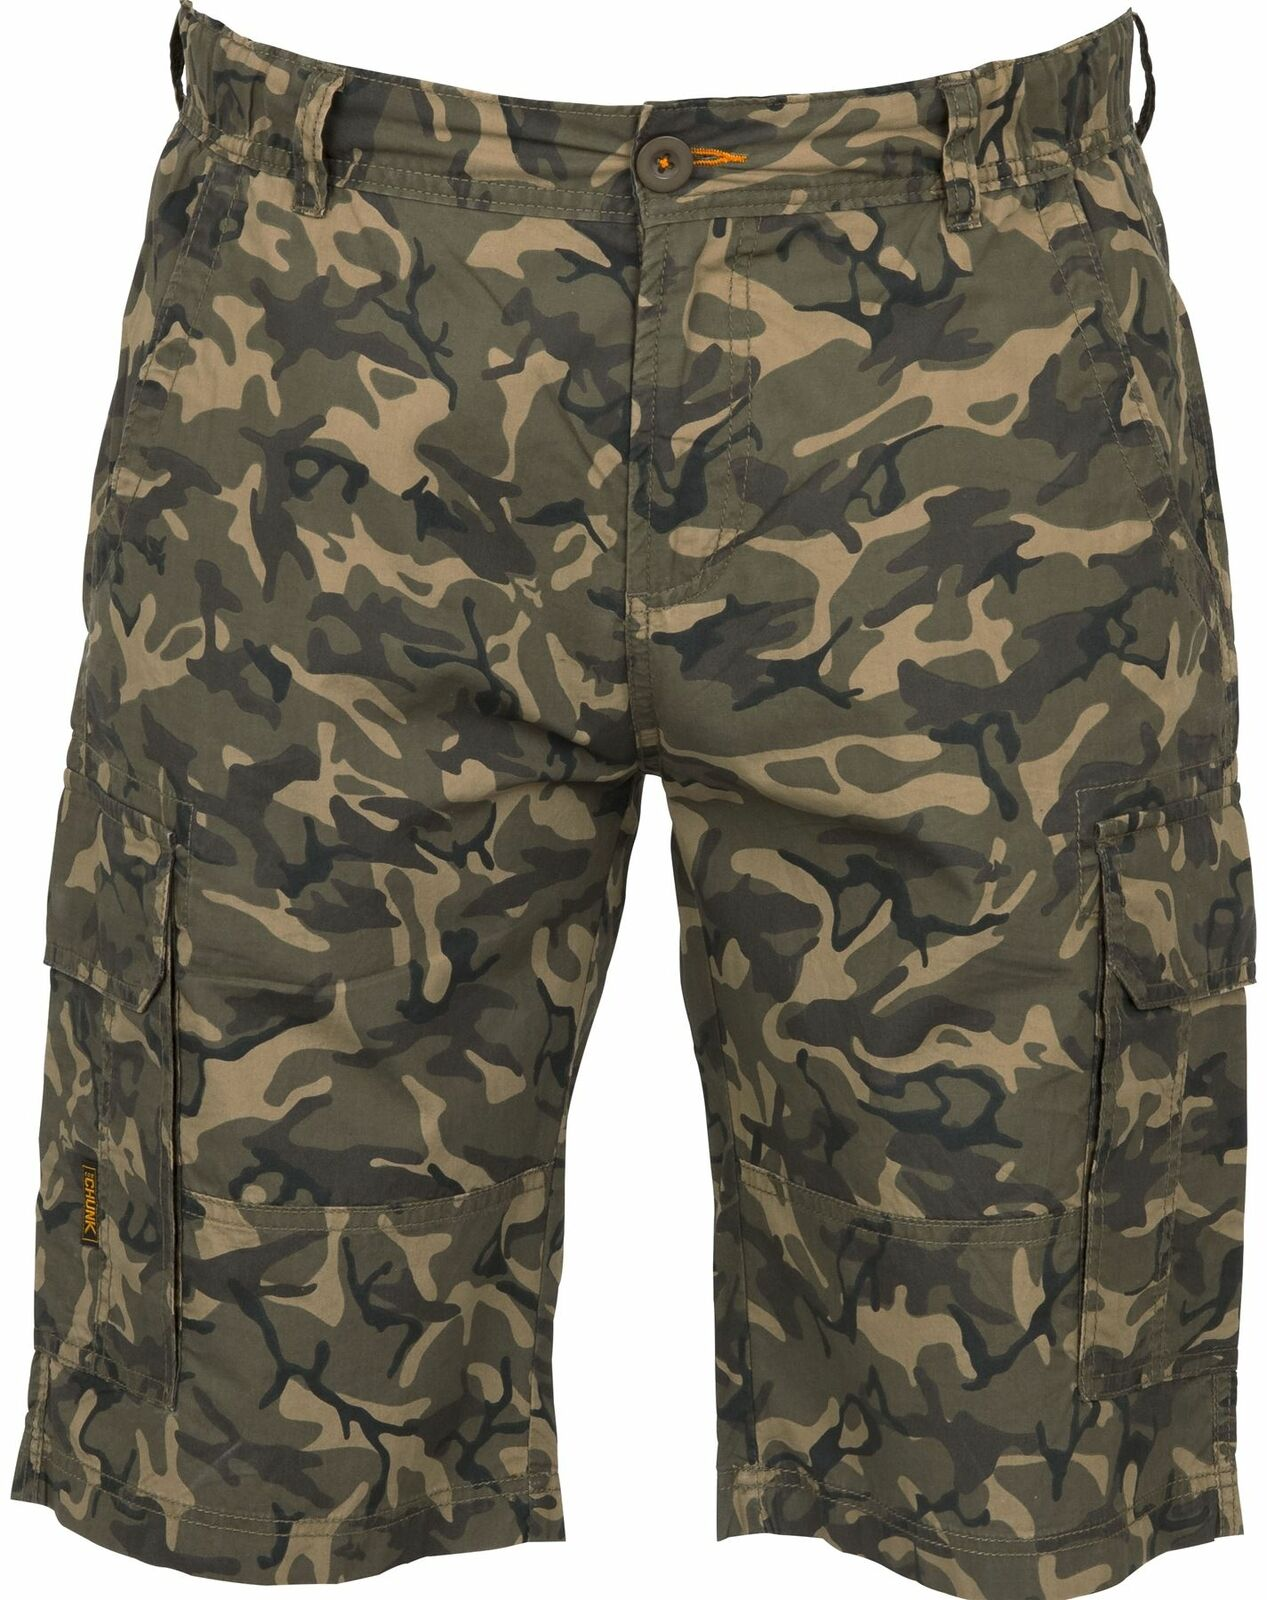 Fox Chunk Lightweight Cargo Shorts Camo   Carp  Fishing Clothing  for cheap